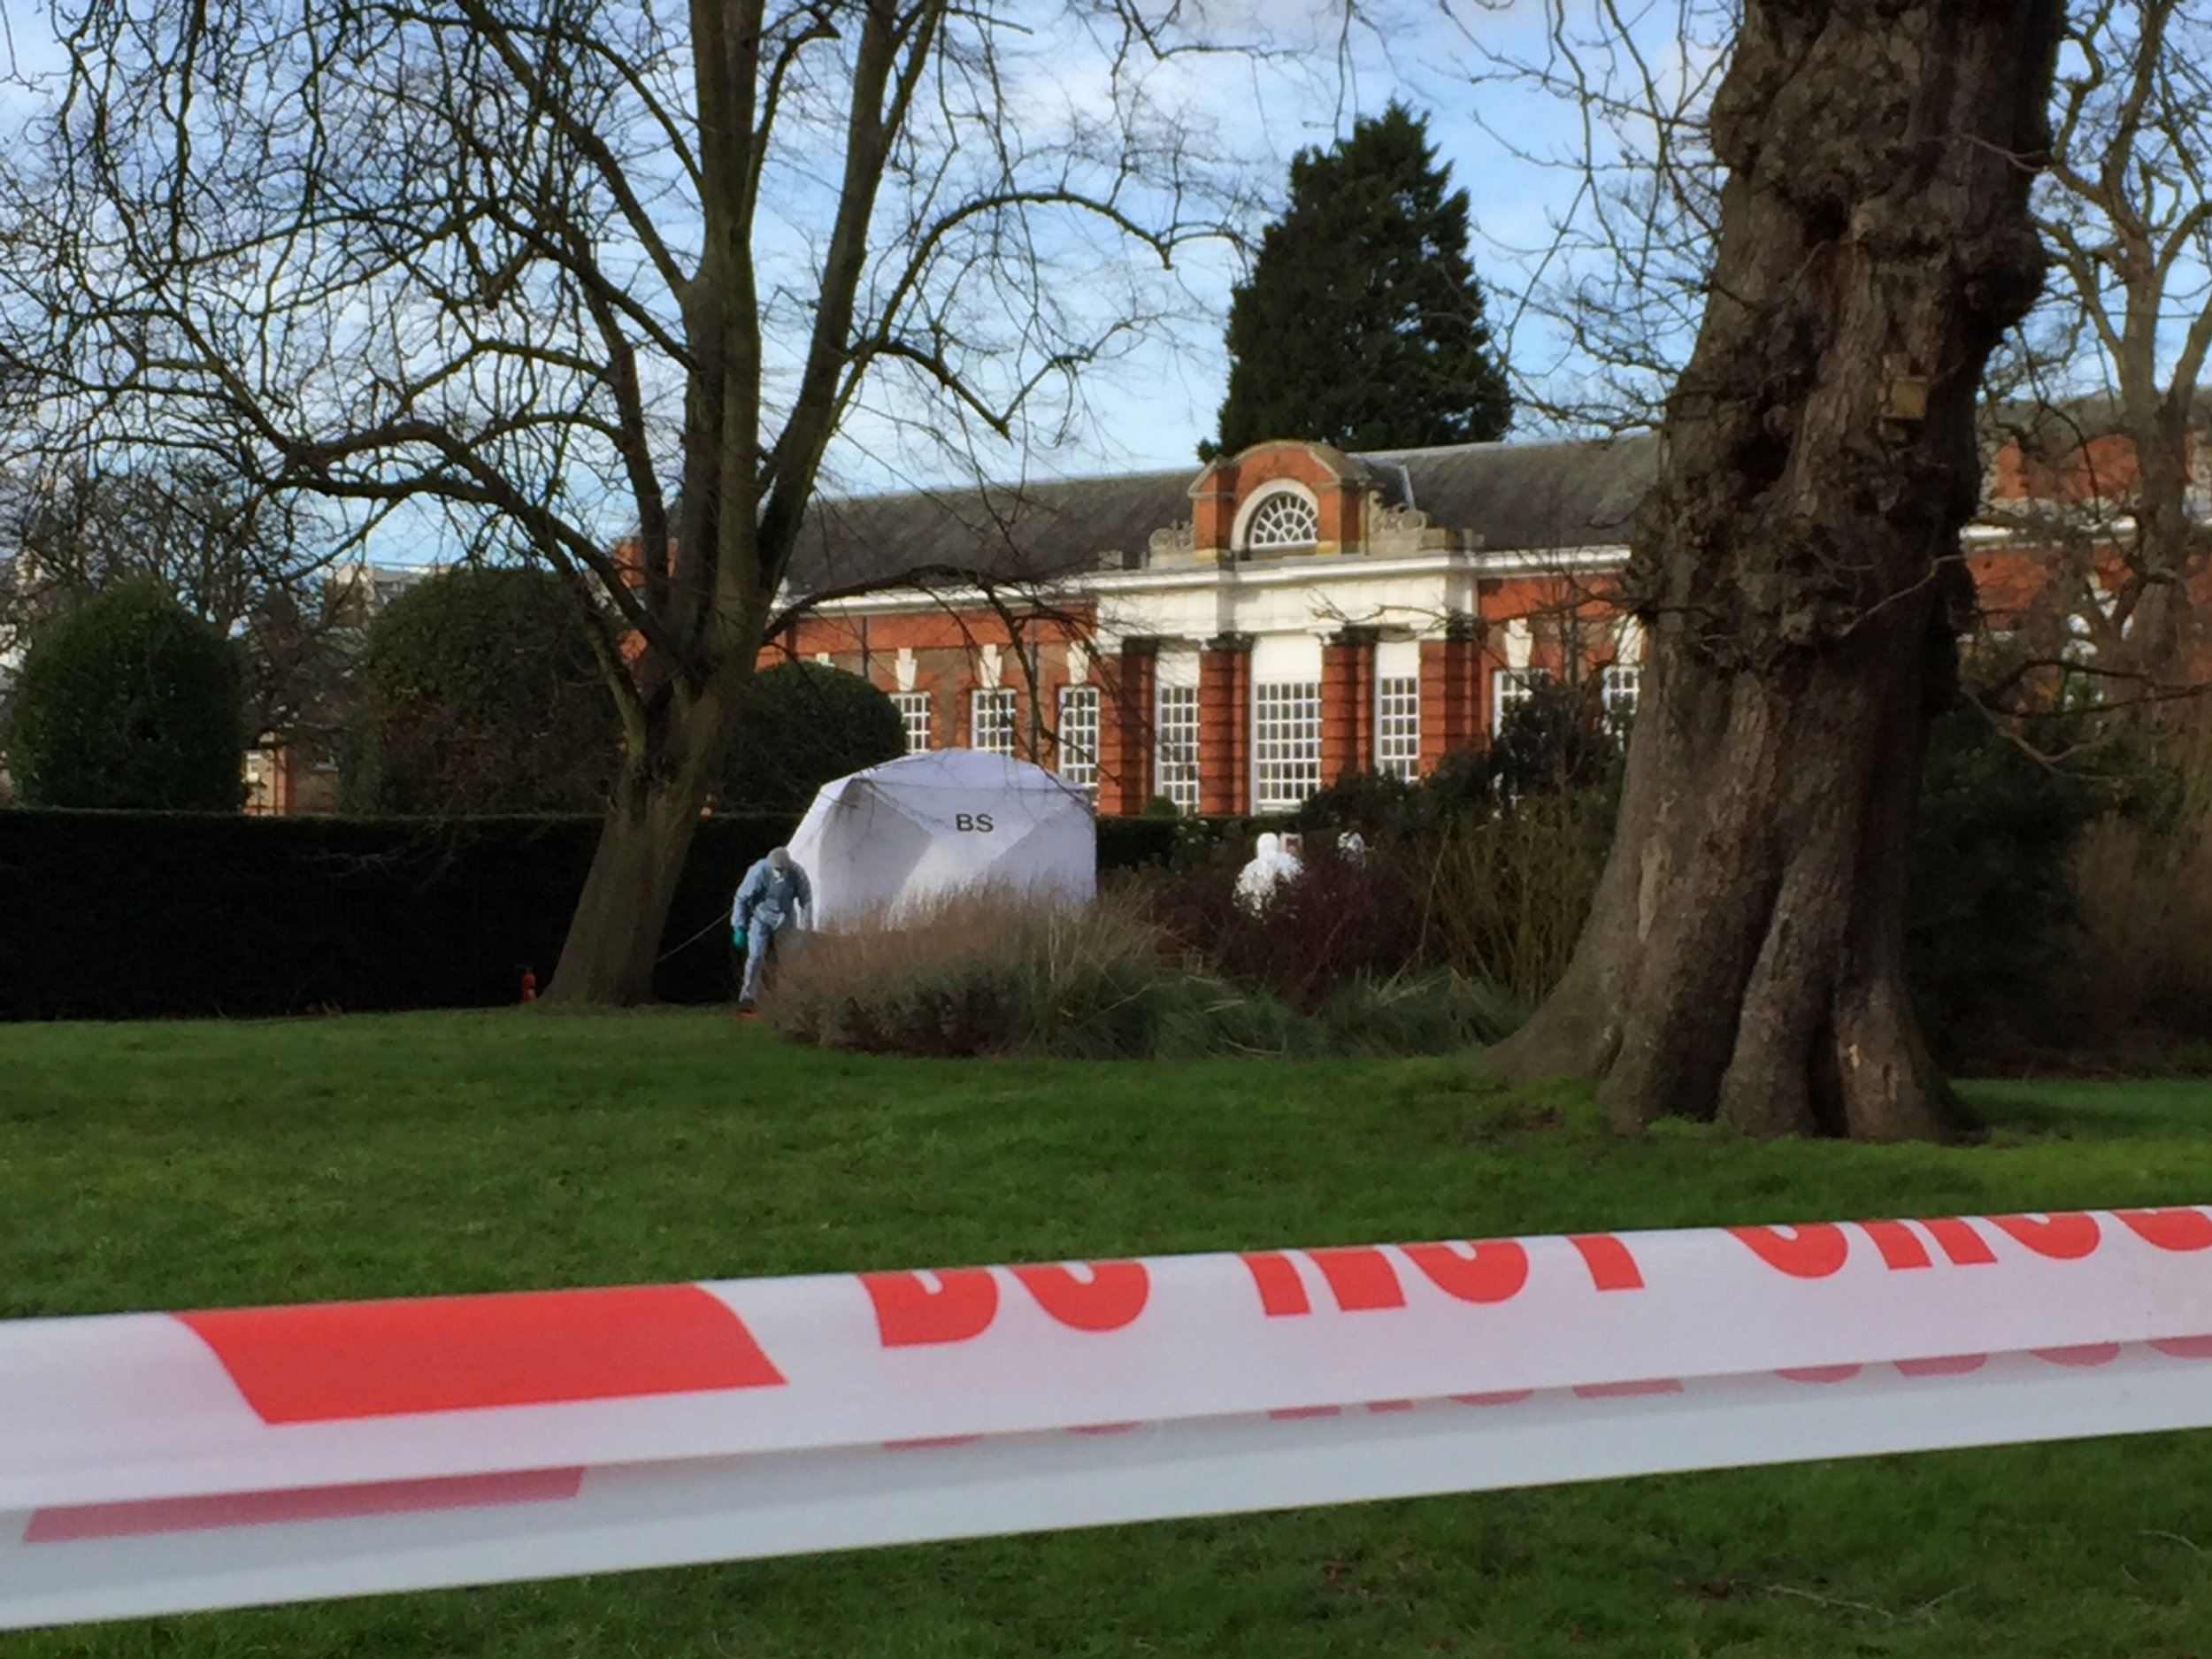 Man sets himself on fire and dies yards from Kensington Palace Photo by Steve Legere